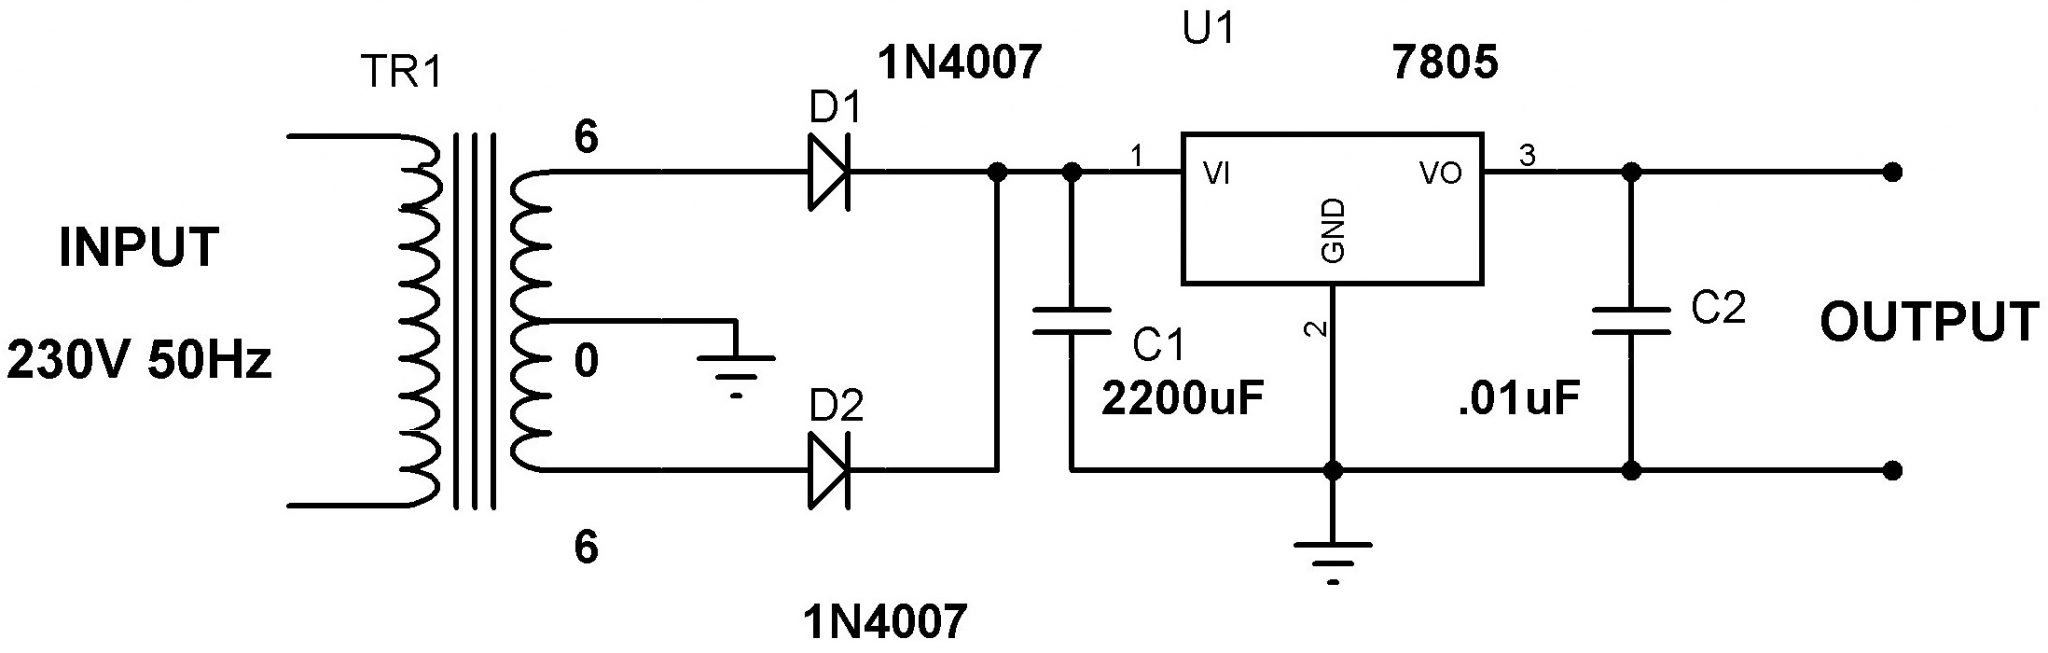 Block Diagram Of 7805 Voltage Regulator